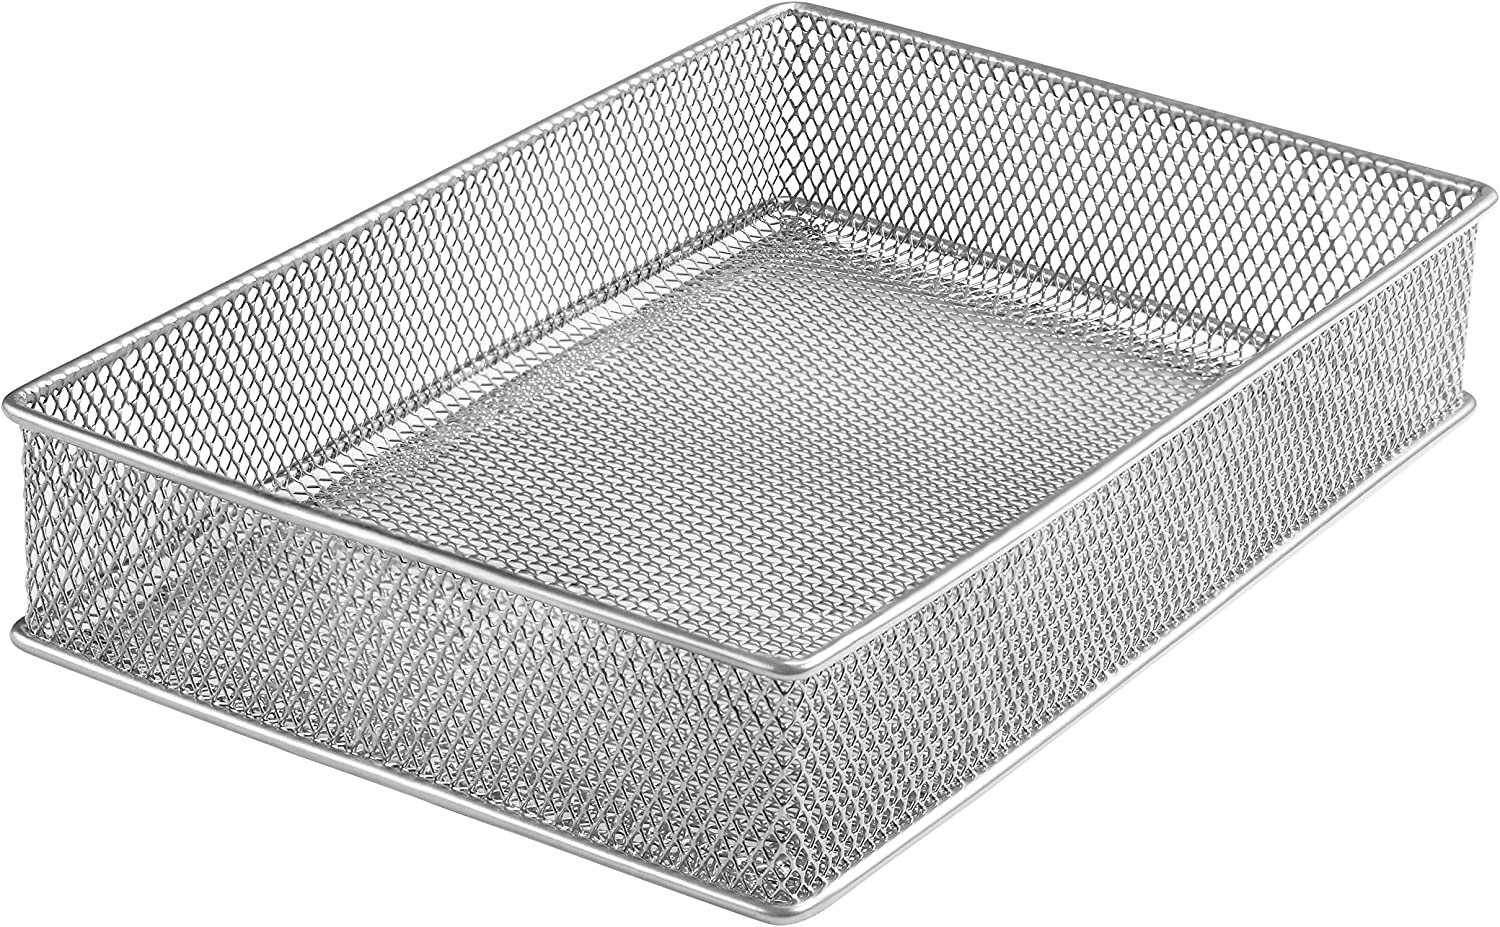 YBM HOME 1590 Mesh Shelf Organizer Bins